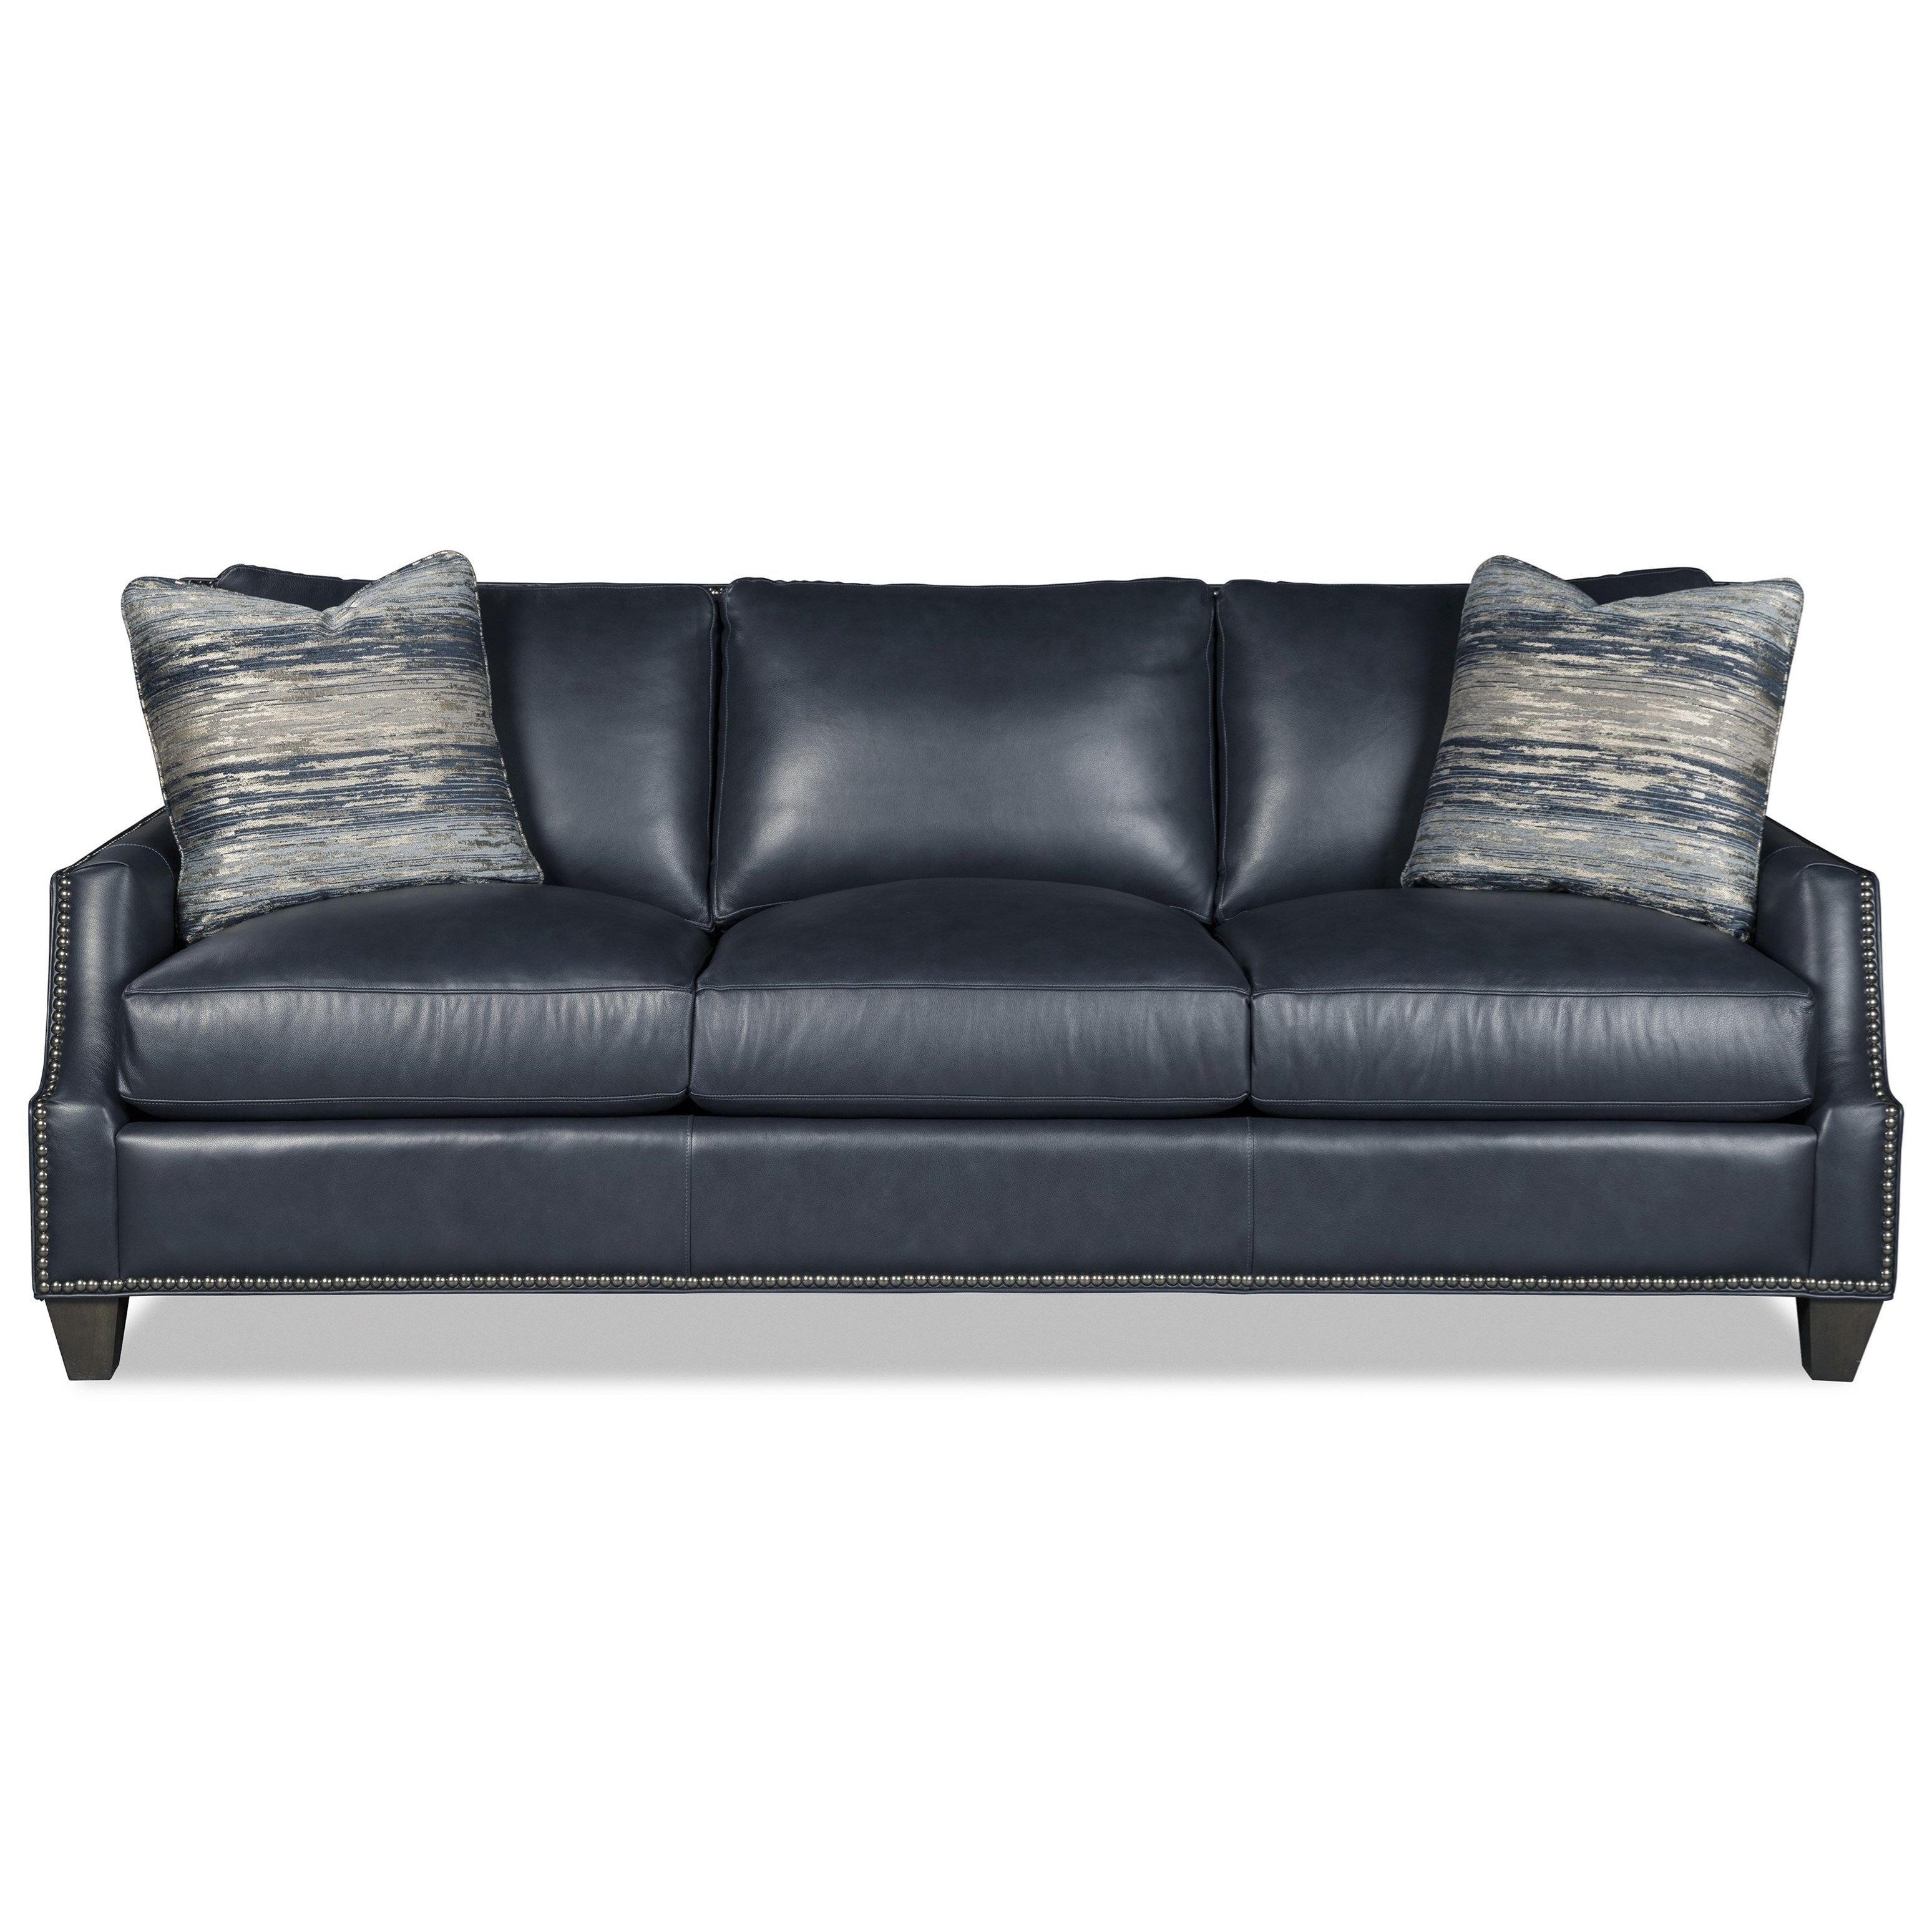 L790350 Sofa by Craftmaster at Baer's Furniture